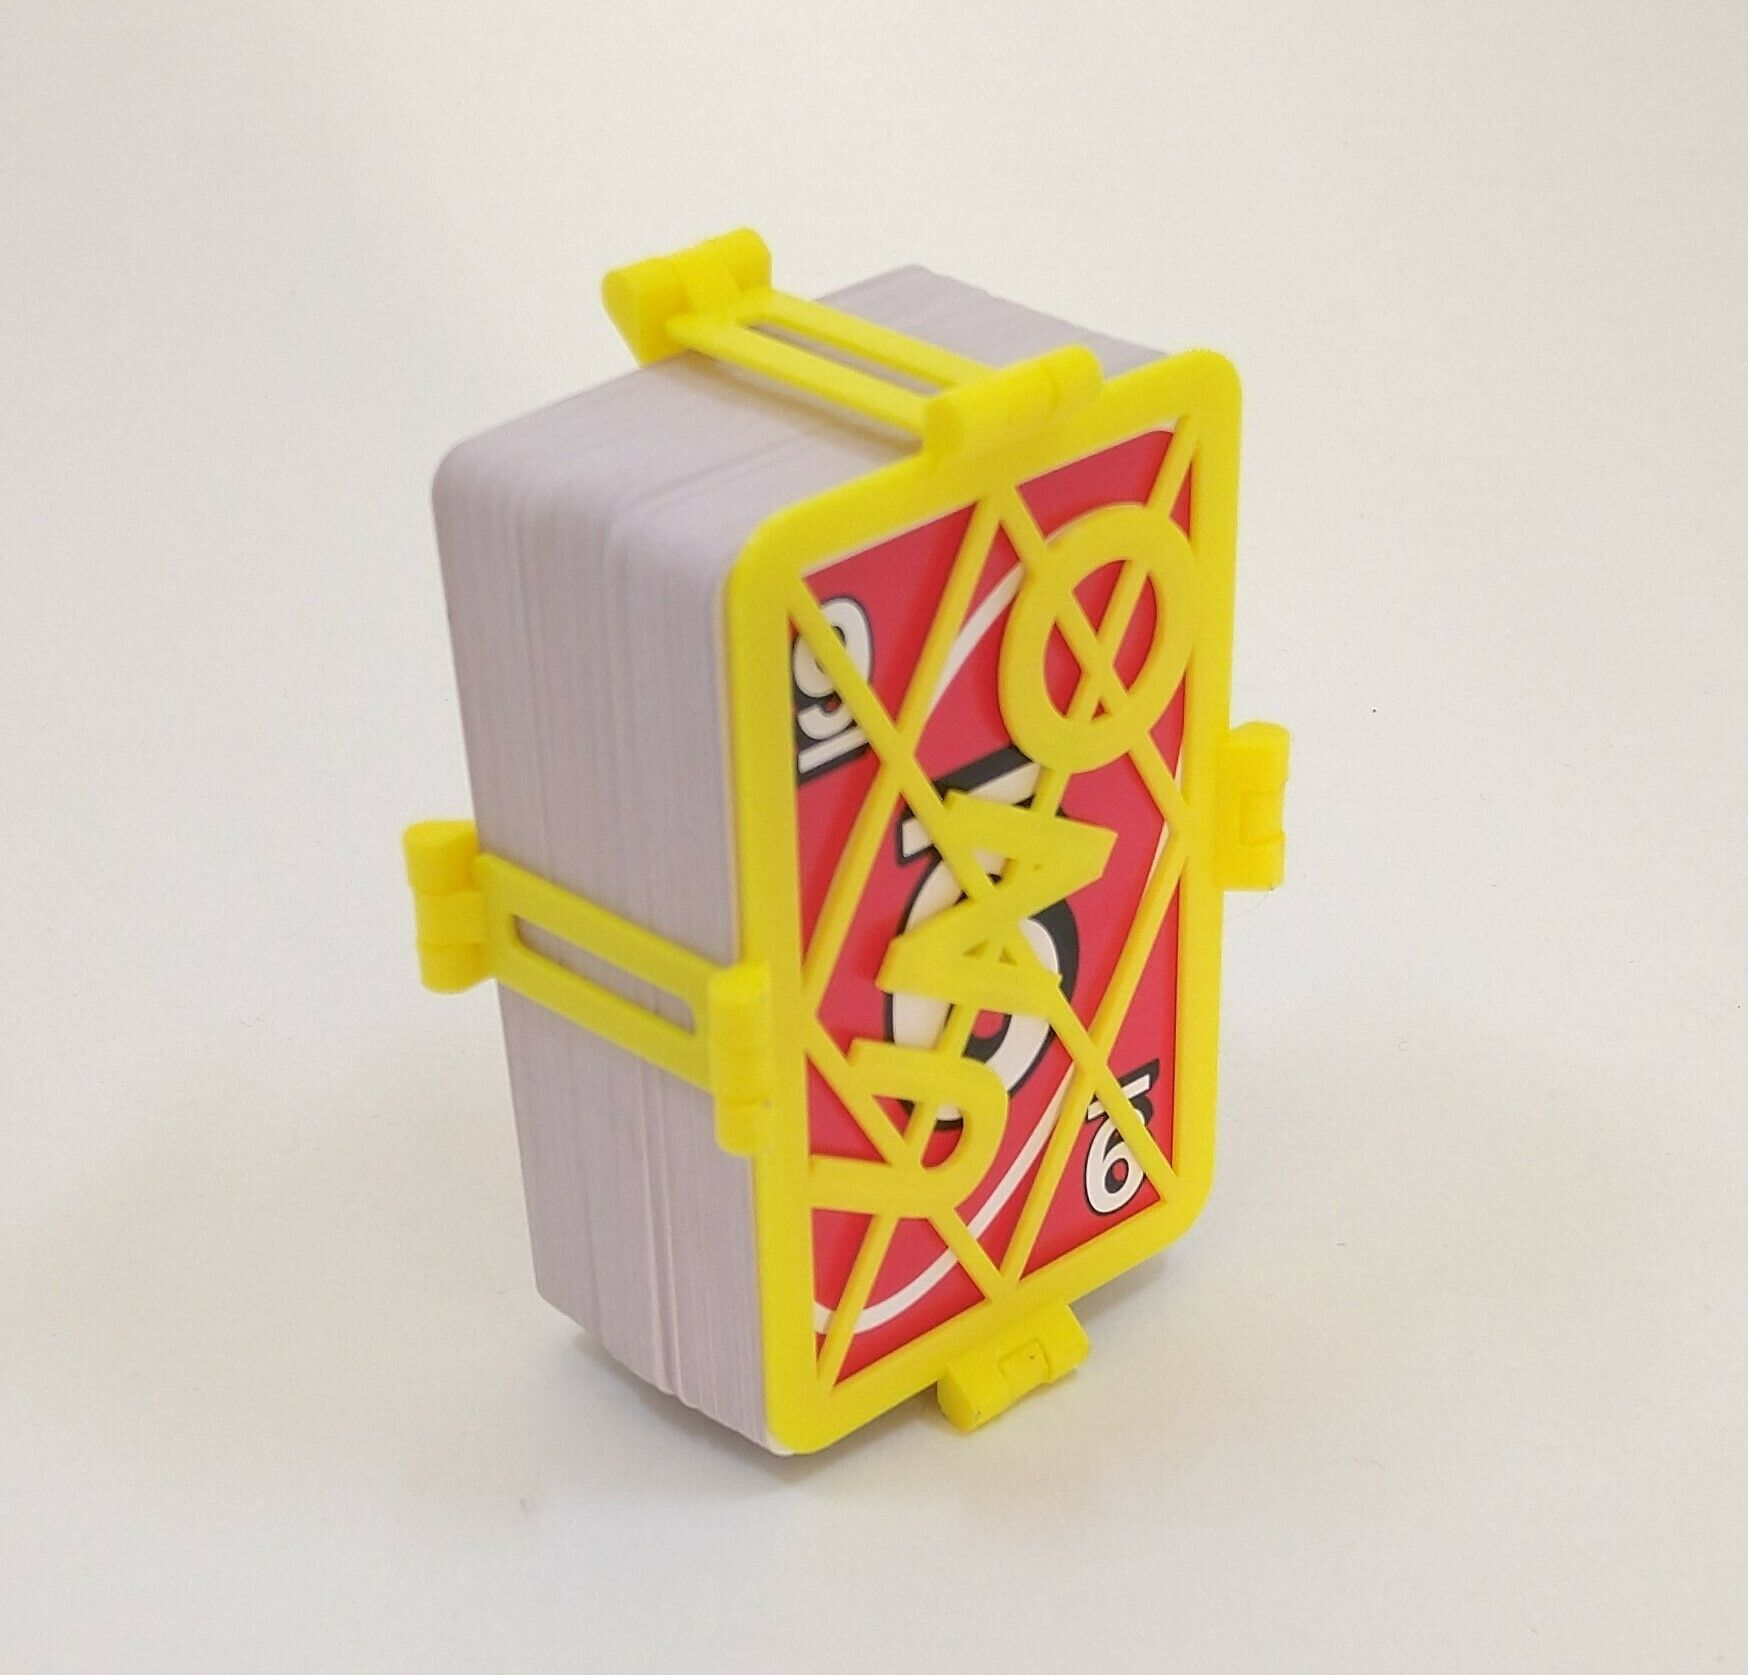 IMG_20210112_100637127.jpg Download free STL file Uno and Poker Deck Case • 3D printing object, Alex_Torres